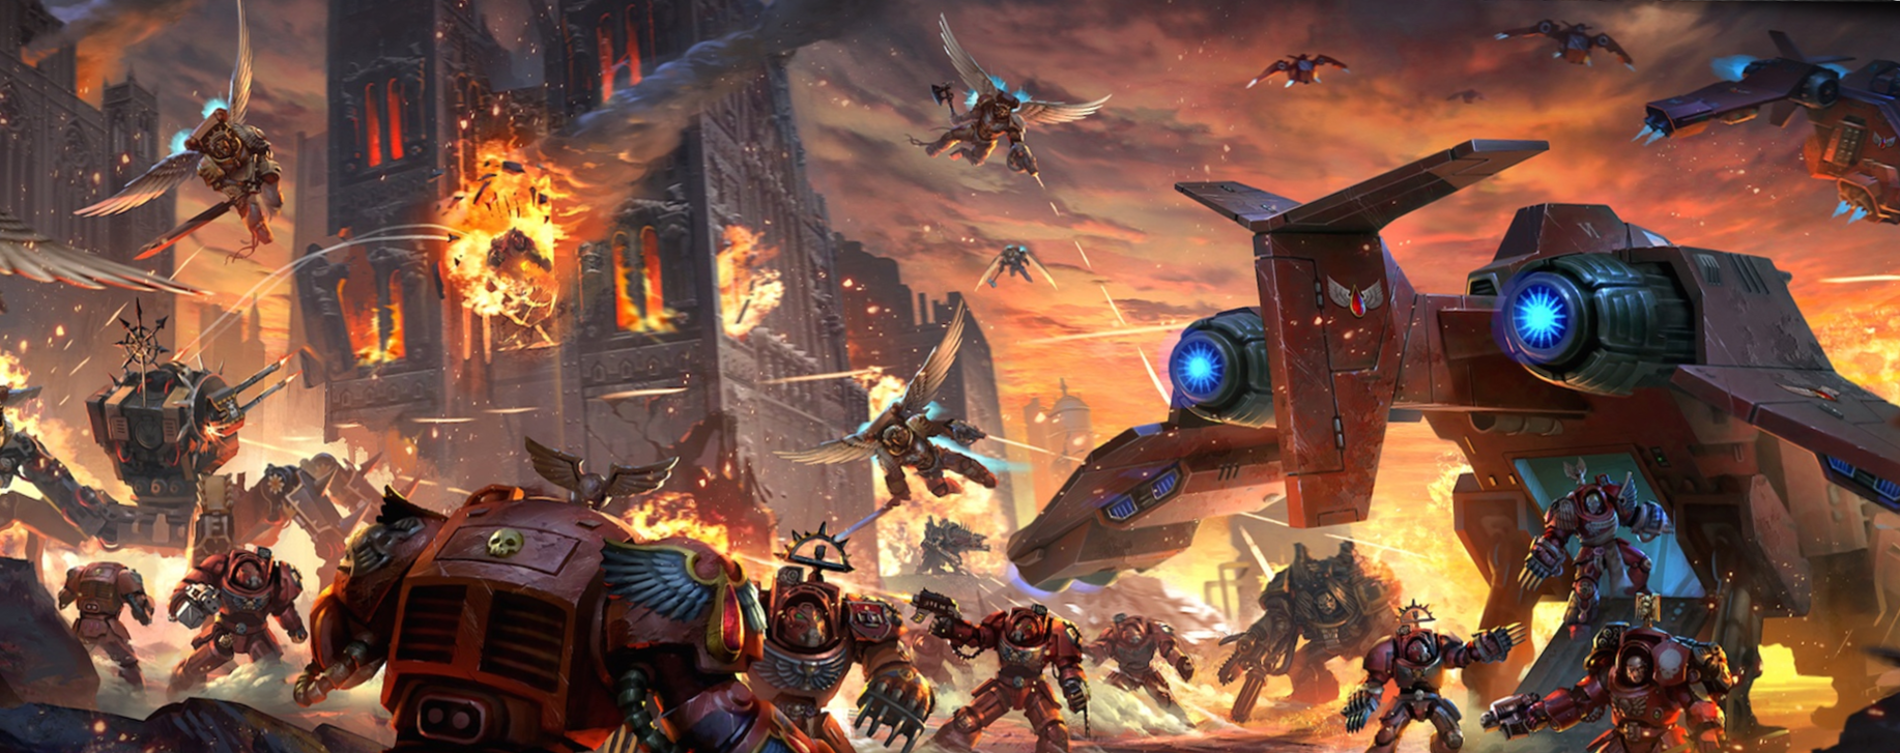 The Latest 'Warhammer 40K' Edition Is a Triumphant Expression of the New Games Workshop